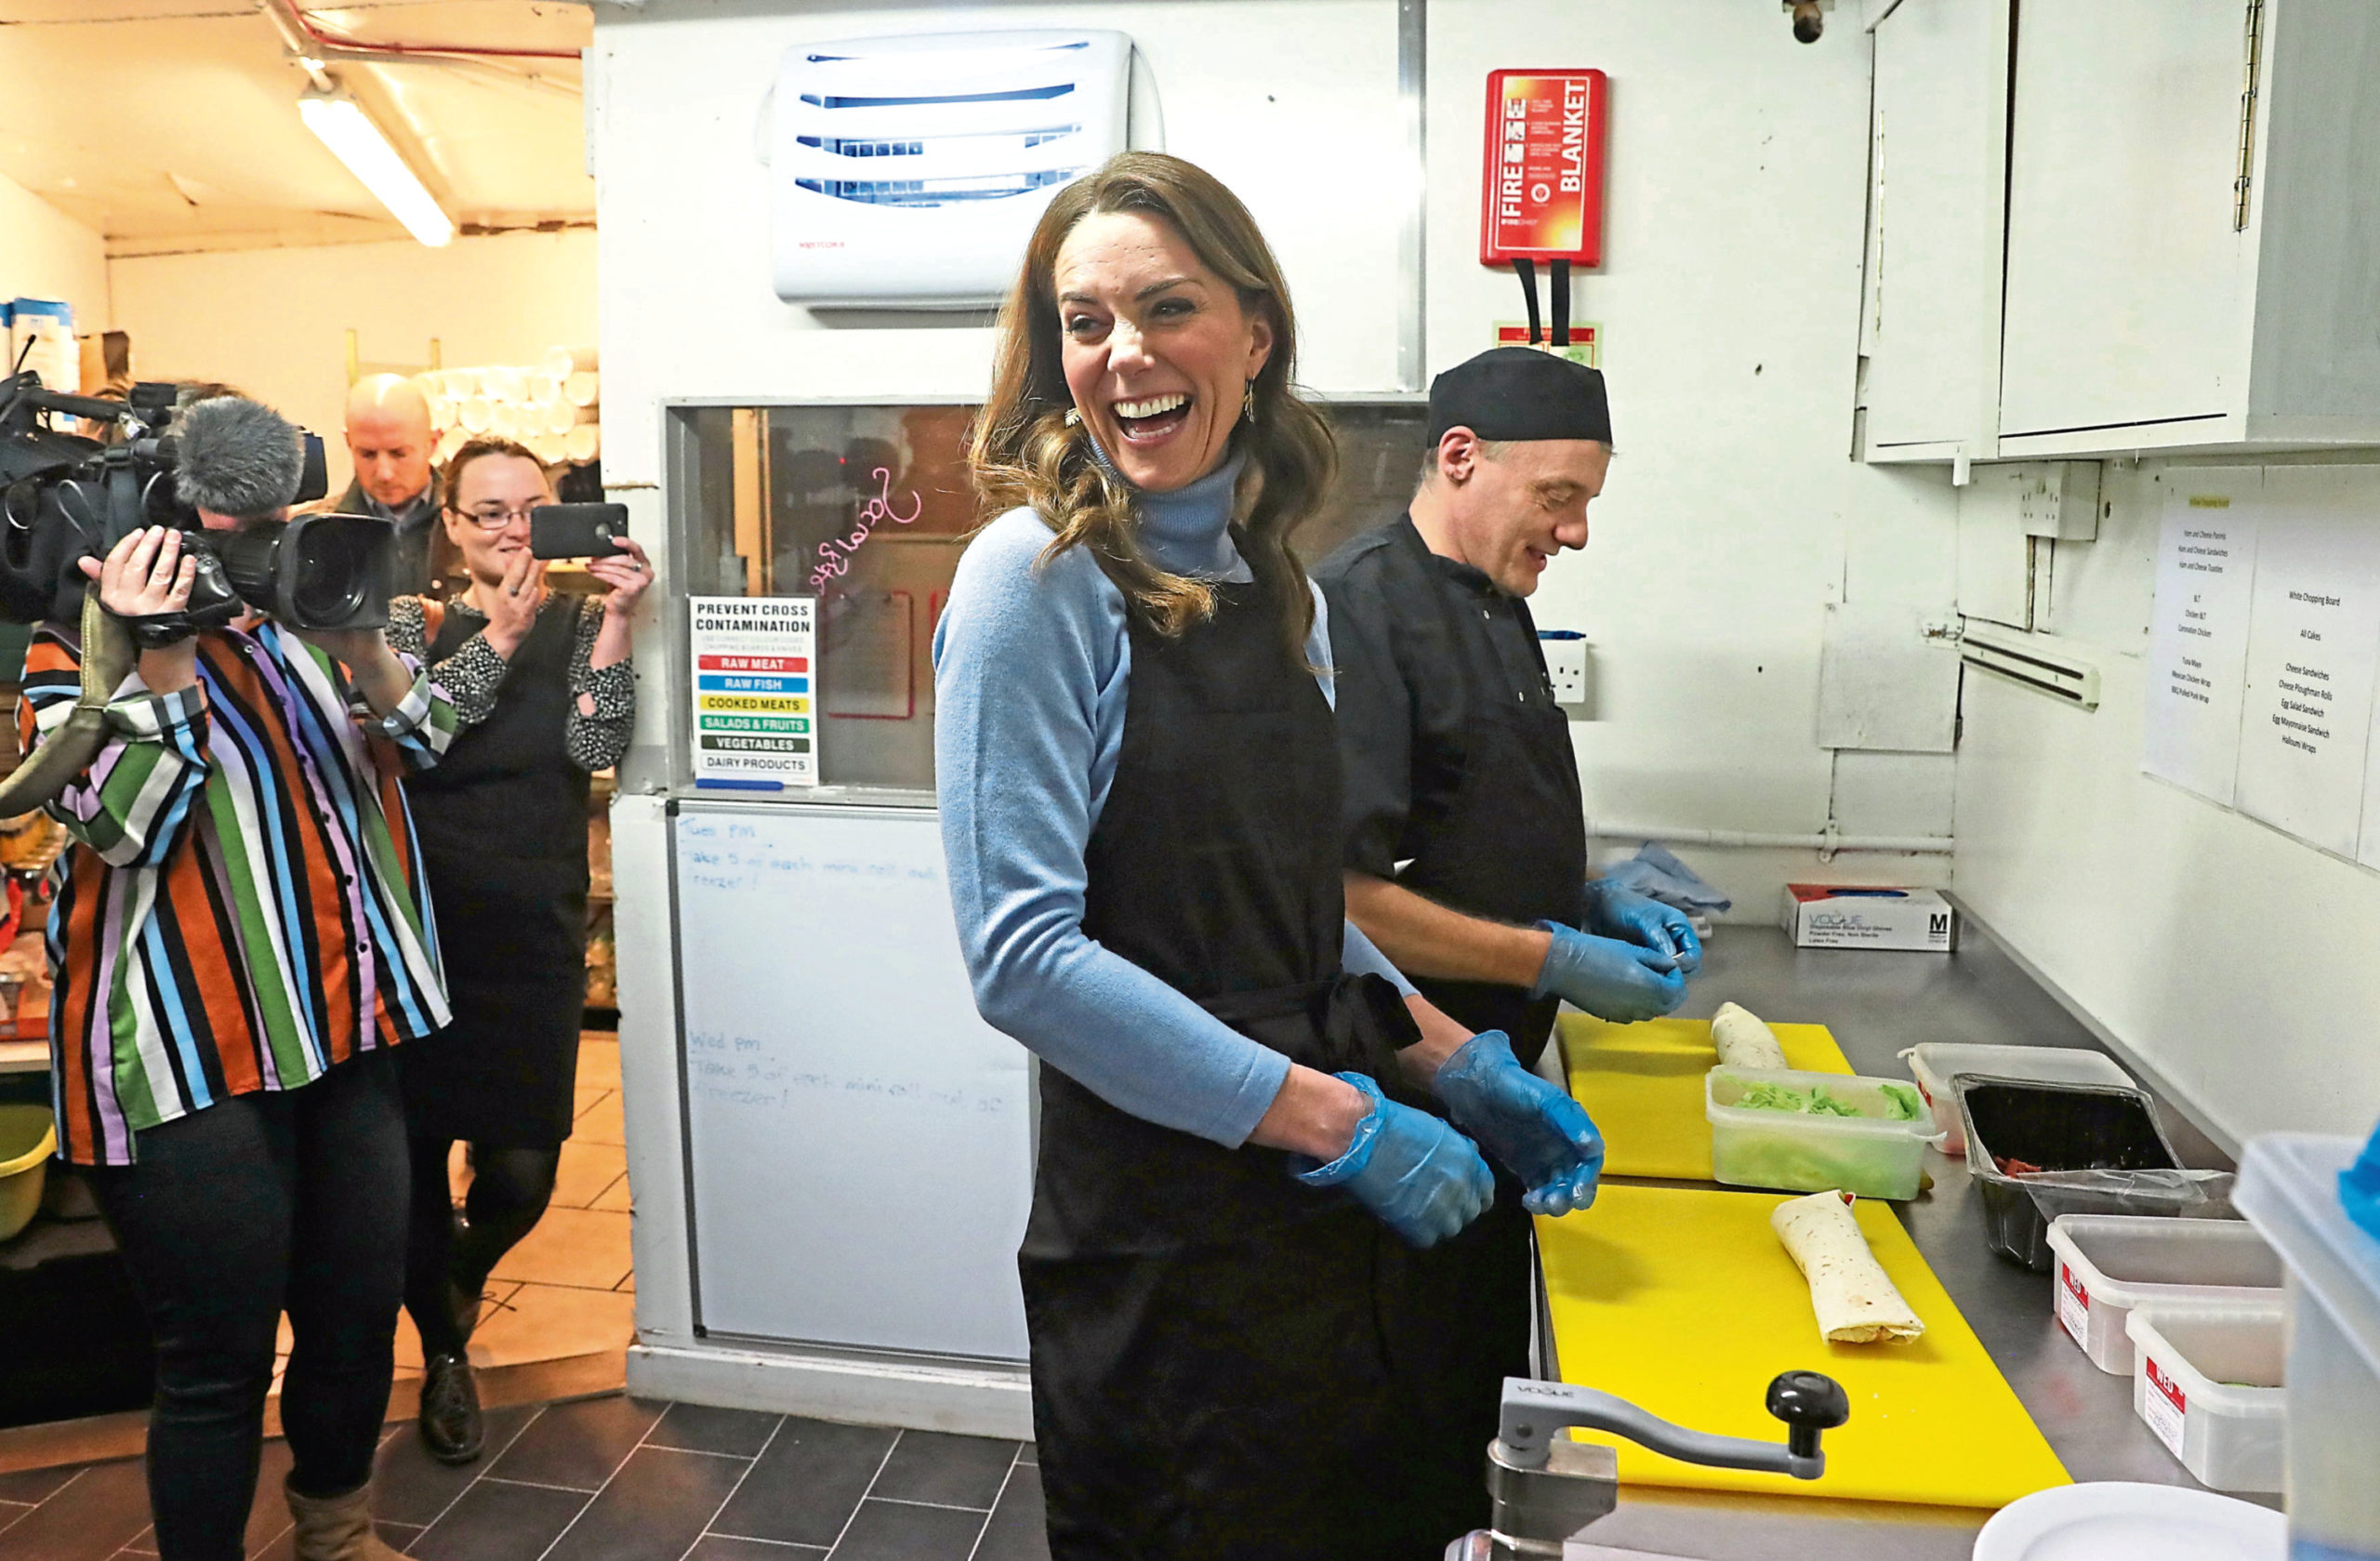 The Duchess of Cambridge, known as the Countess of Strathearn while in Scotland, helps to prepare food during a visit to the Social Bite cafe in Aberdeen